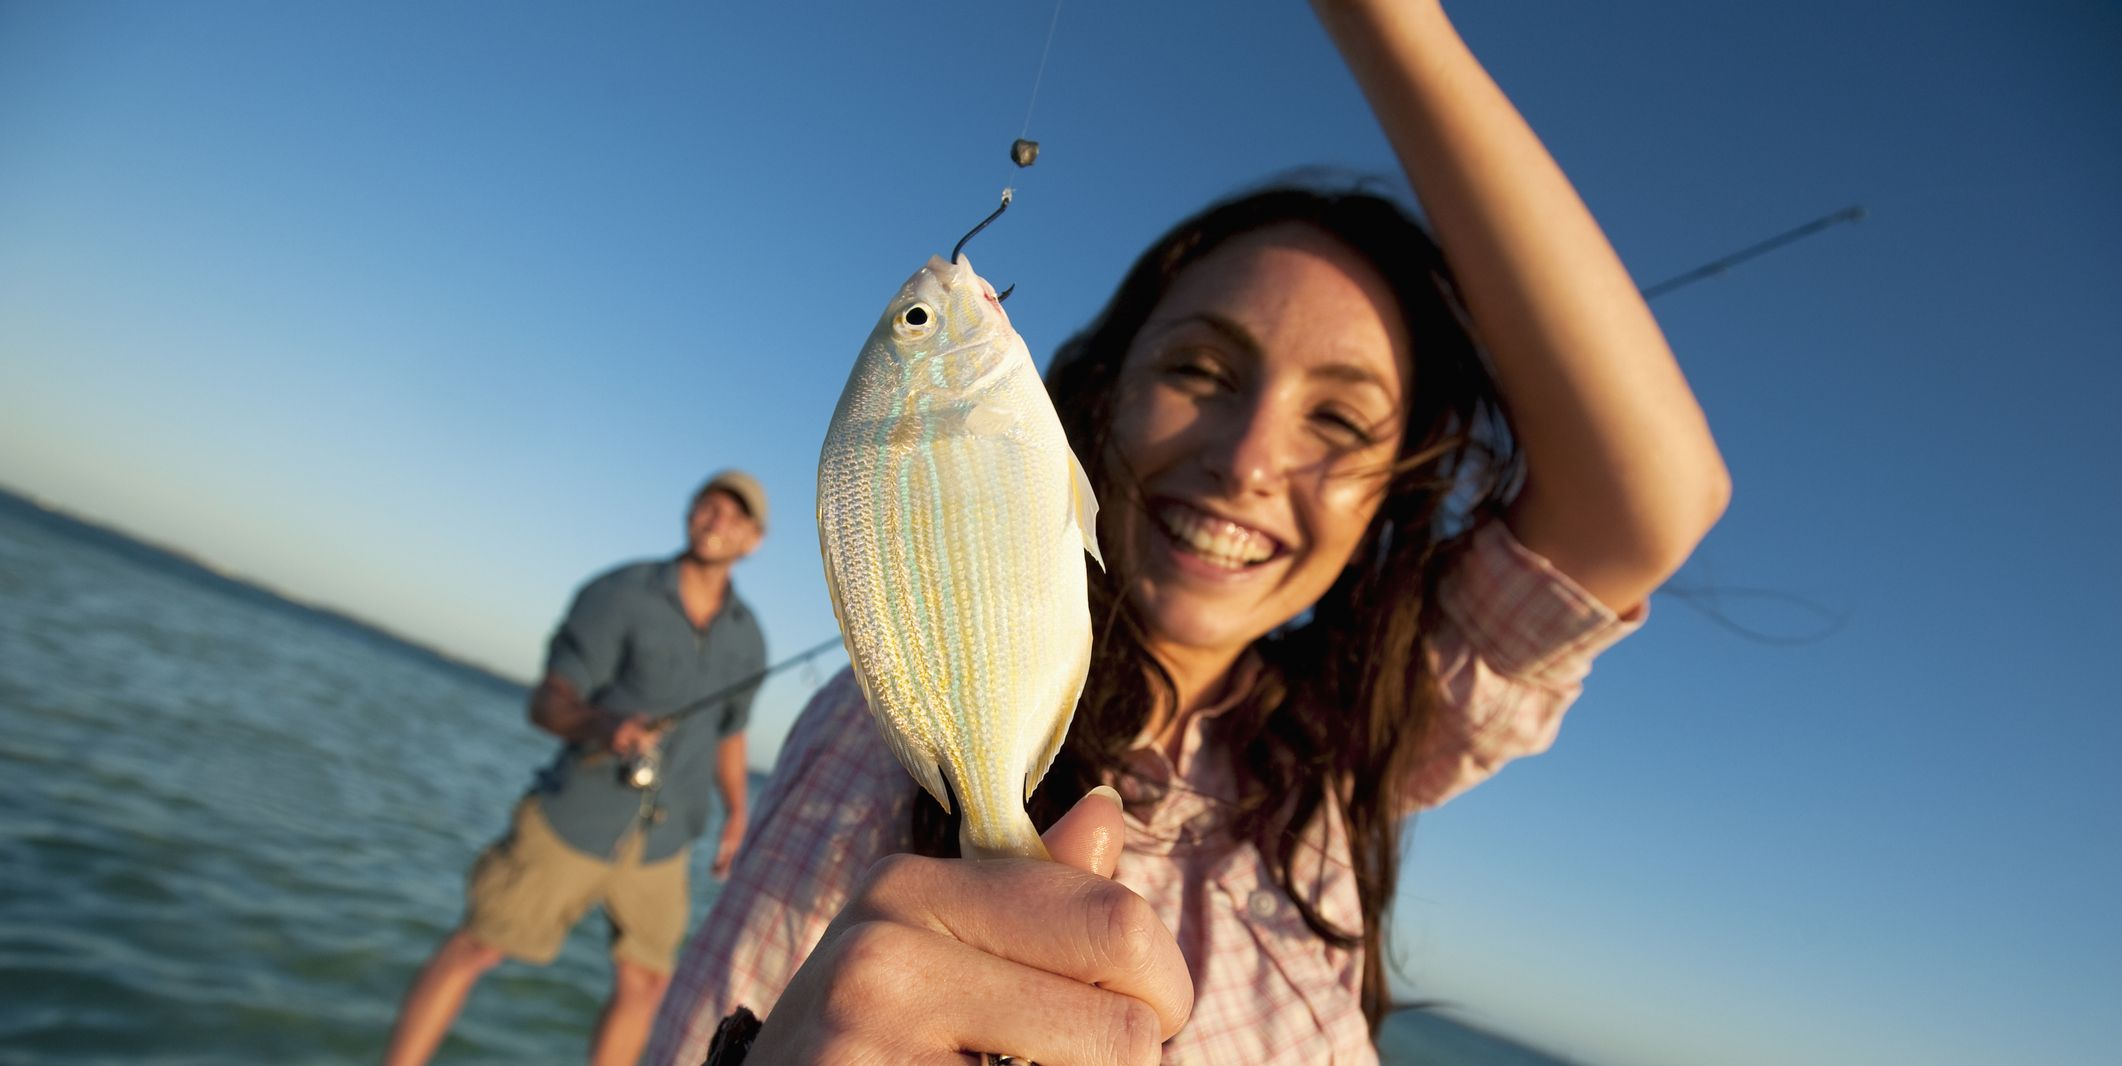 A woman smiles and holds up a small fish in Florida.